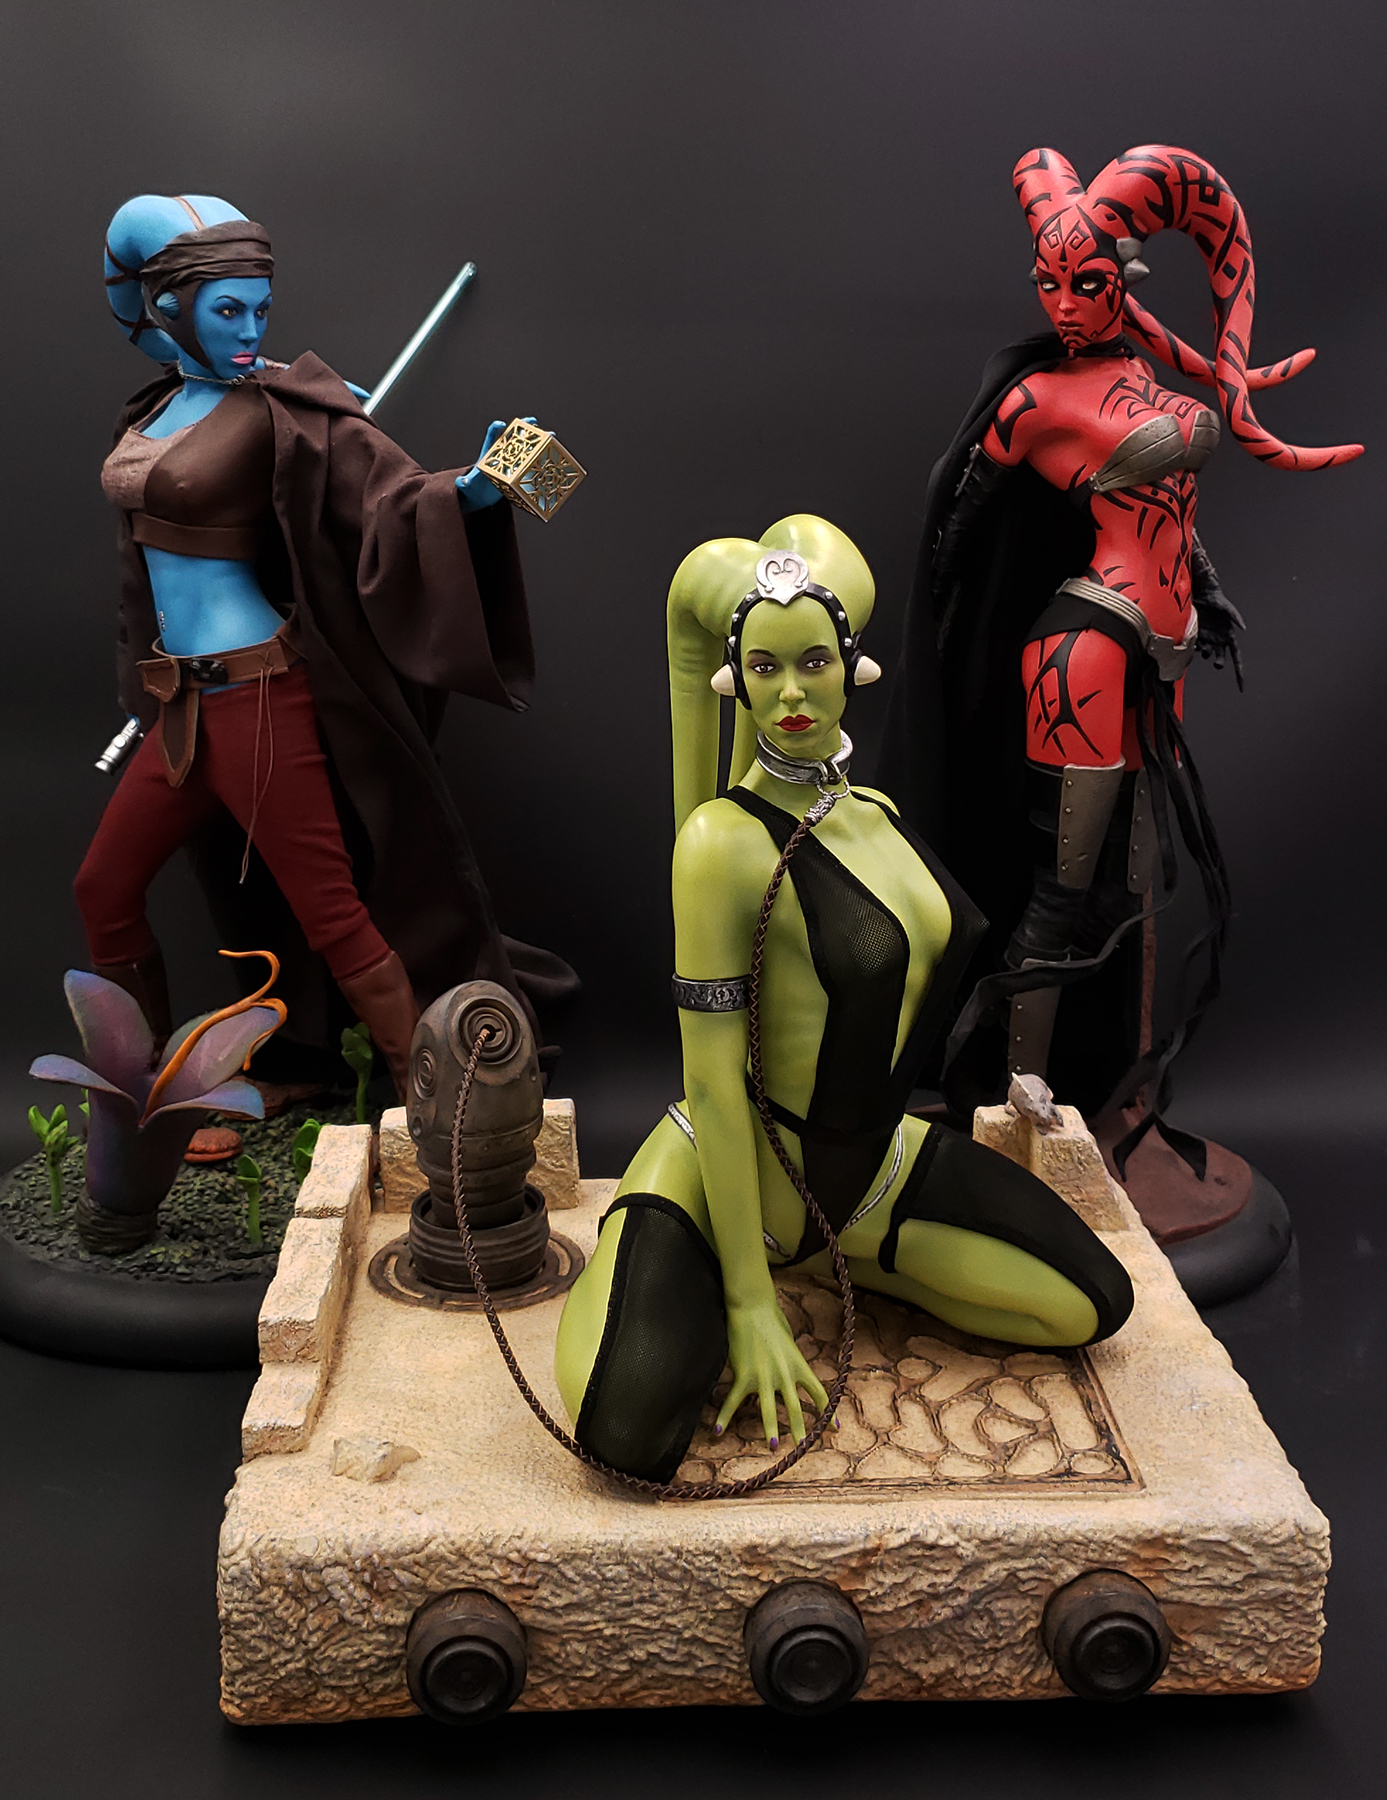 Oola_Star_Wars_Statue_22